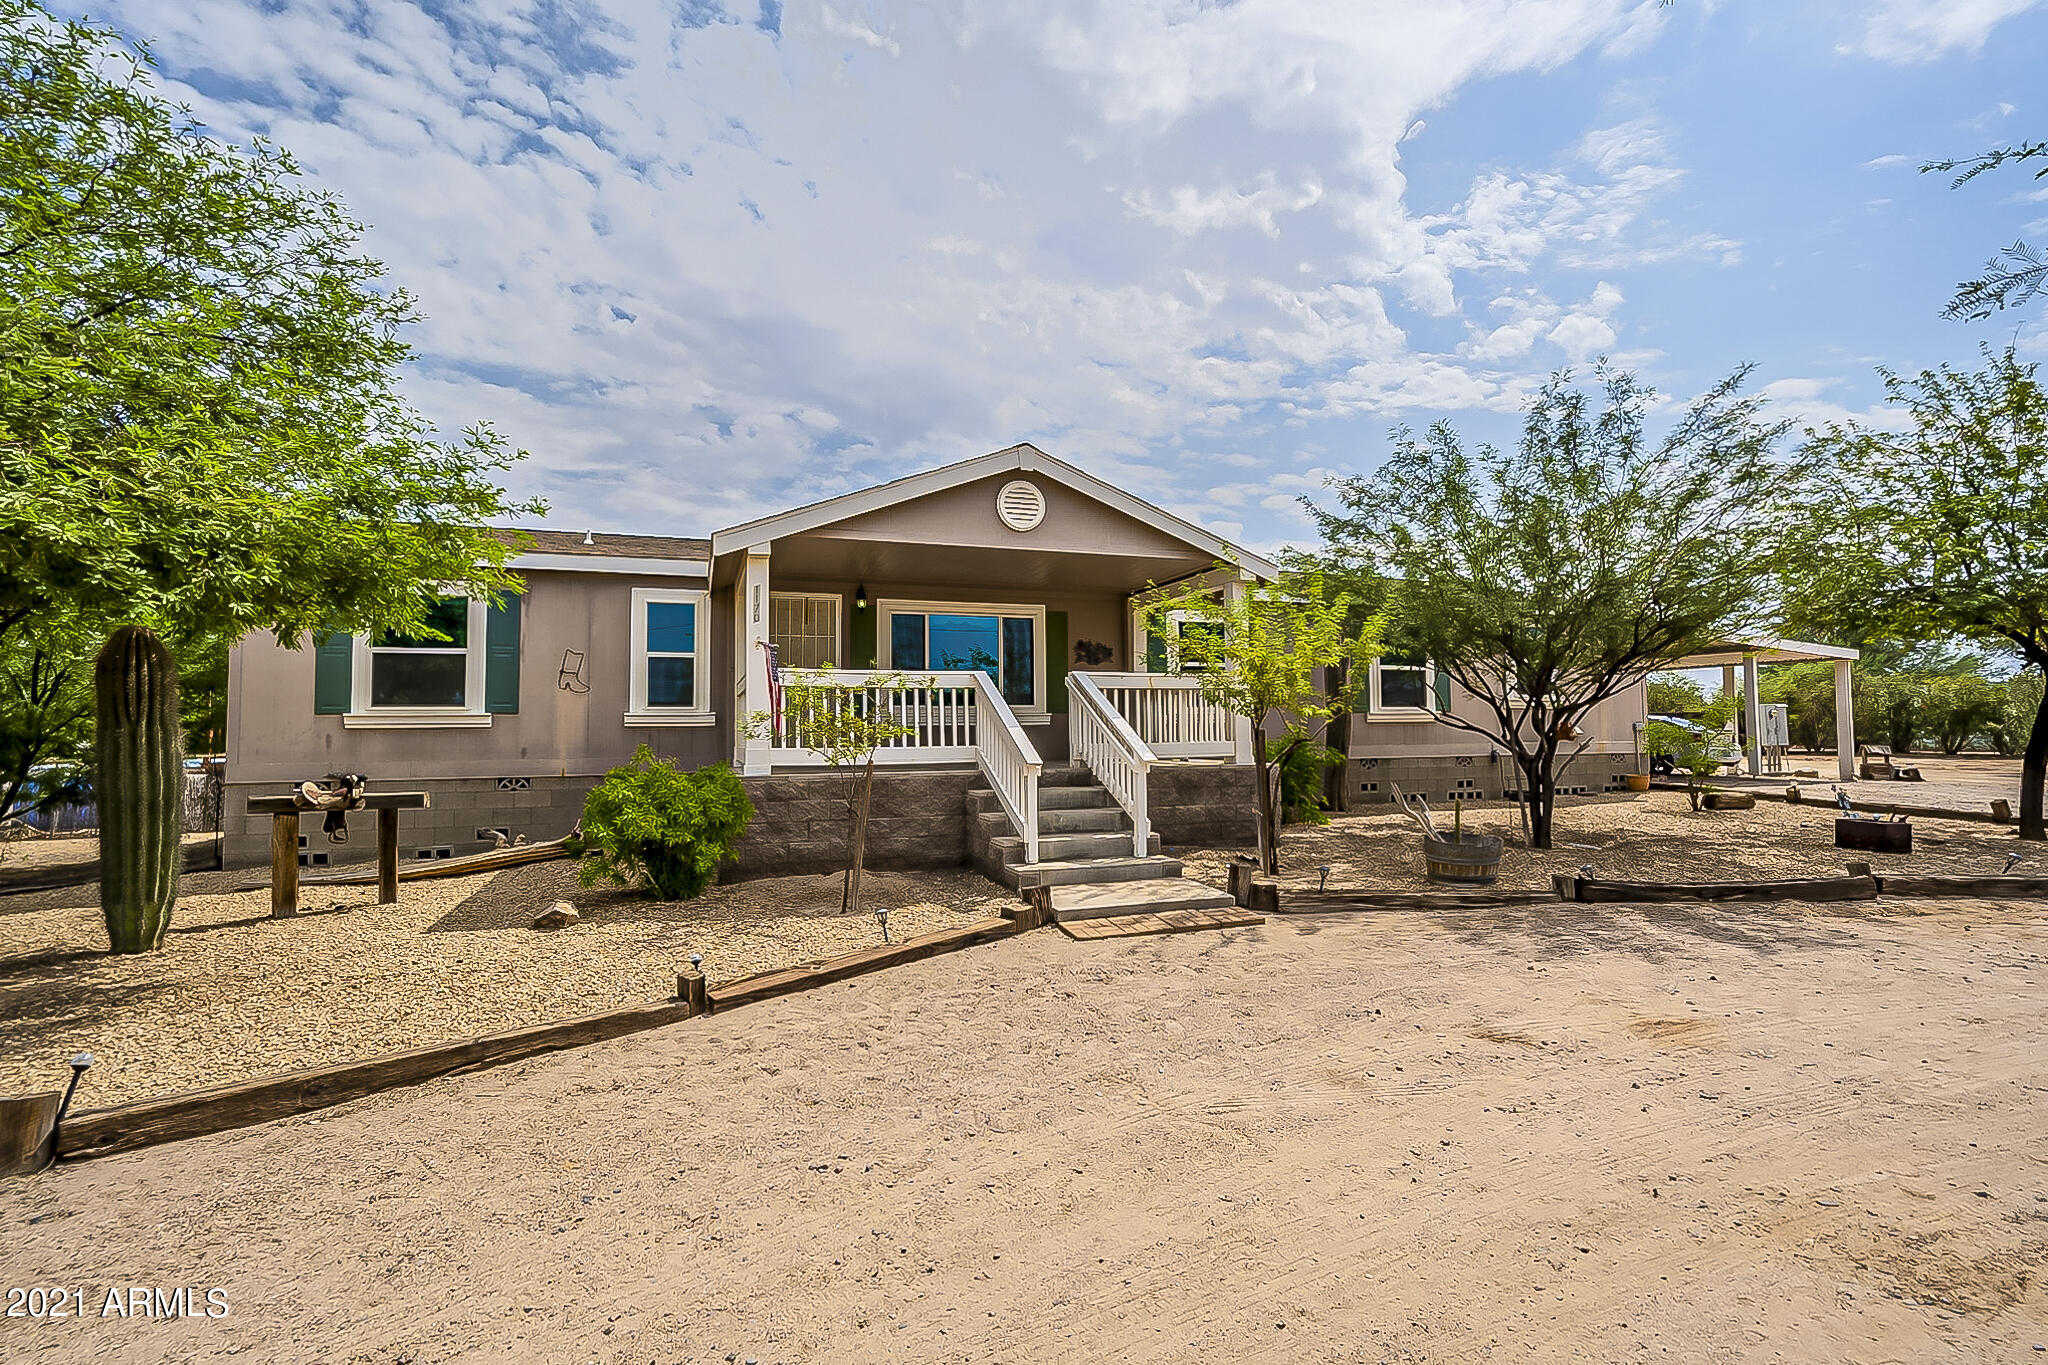 $467,500 - 4Br/2Ba -  for Sale in Rural - Not Subdivided, Buckeye